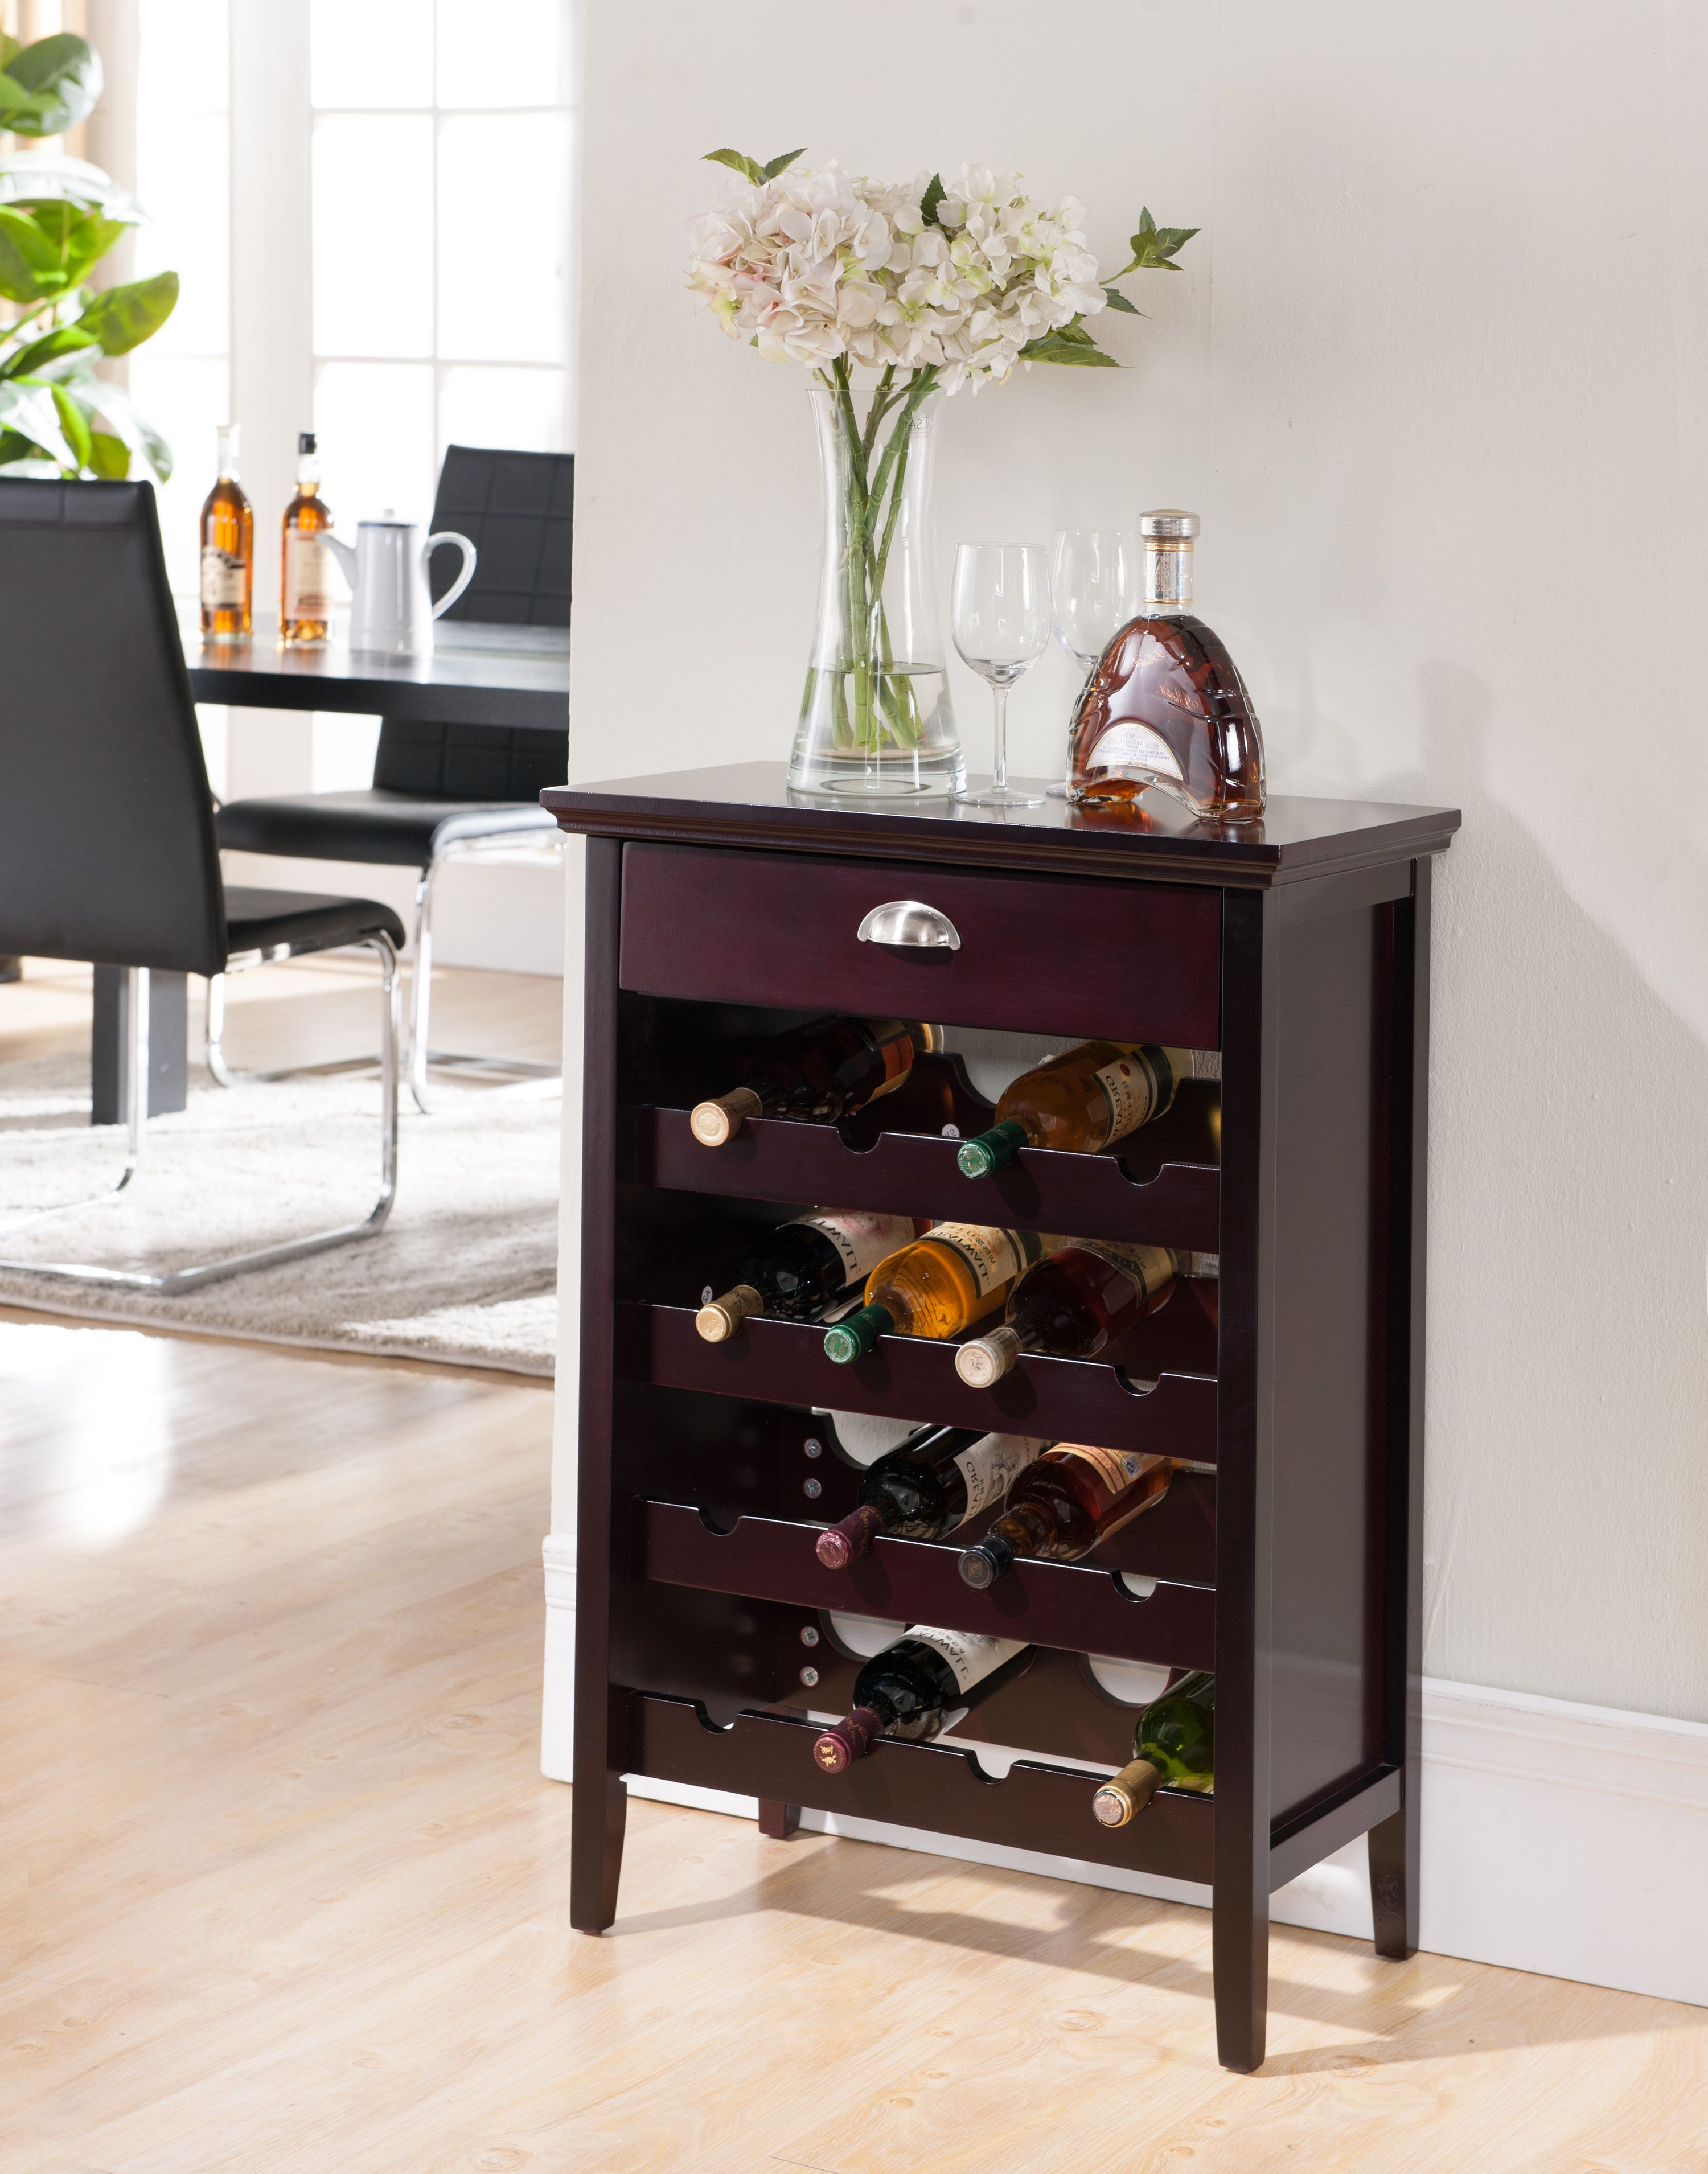 Antonio Dark Cherry Wood Contemporary Wine Rack Buffet Display Cabinet With Storage Drawer by Pilaster Designs